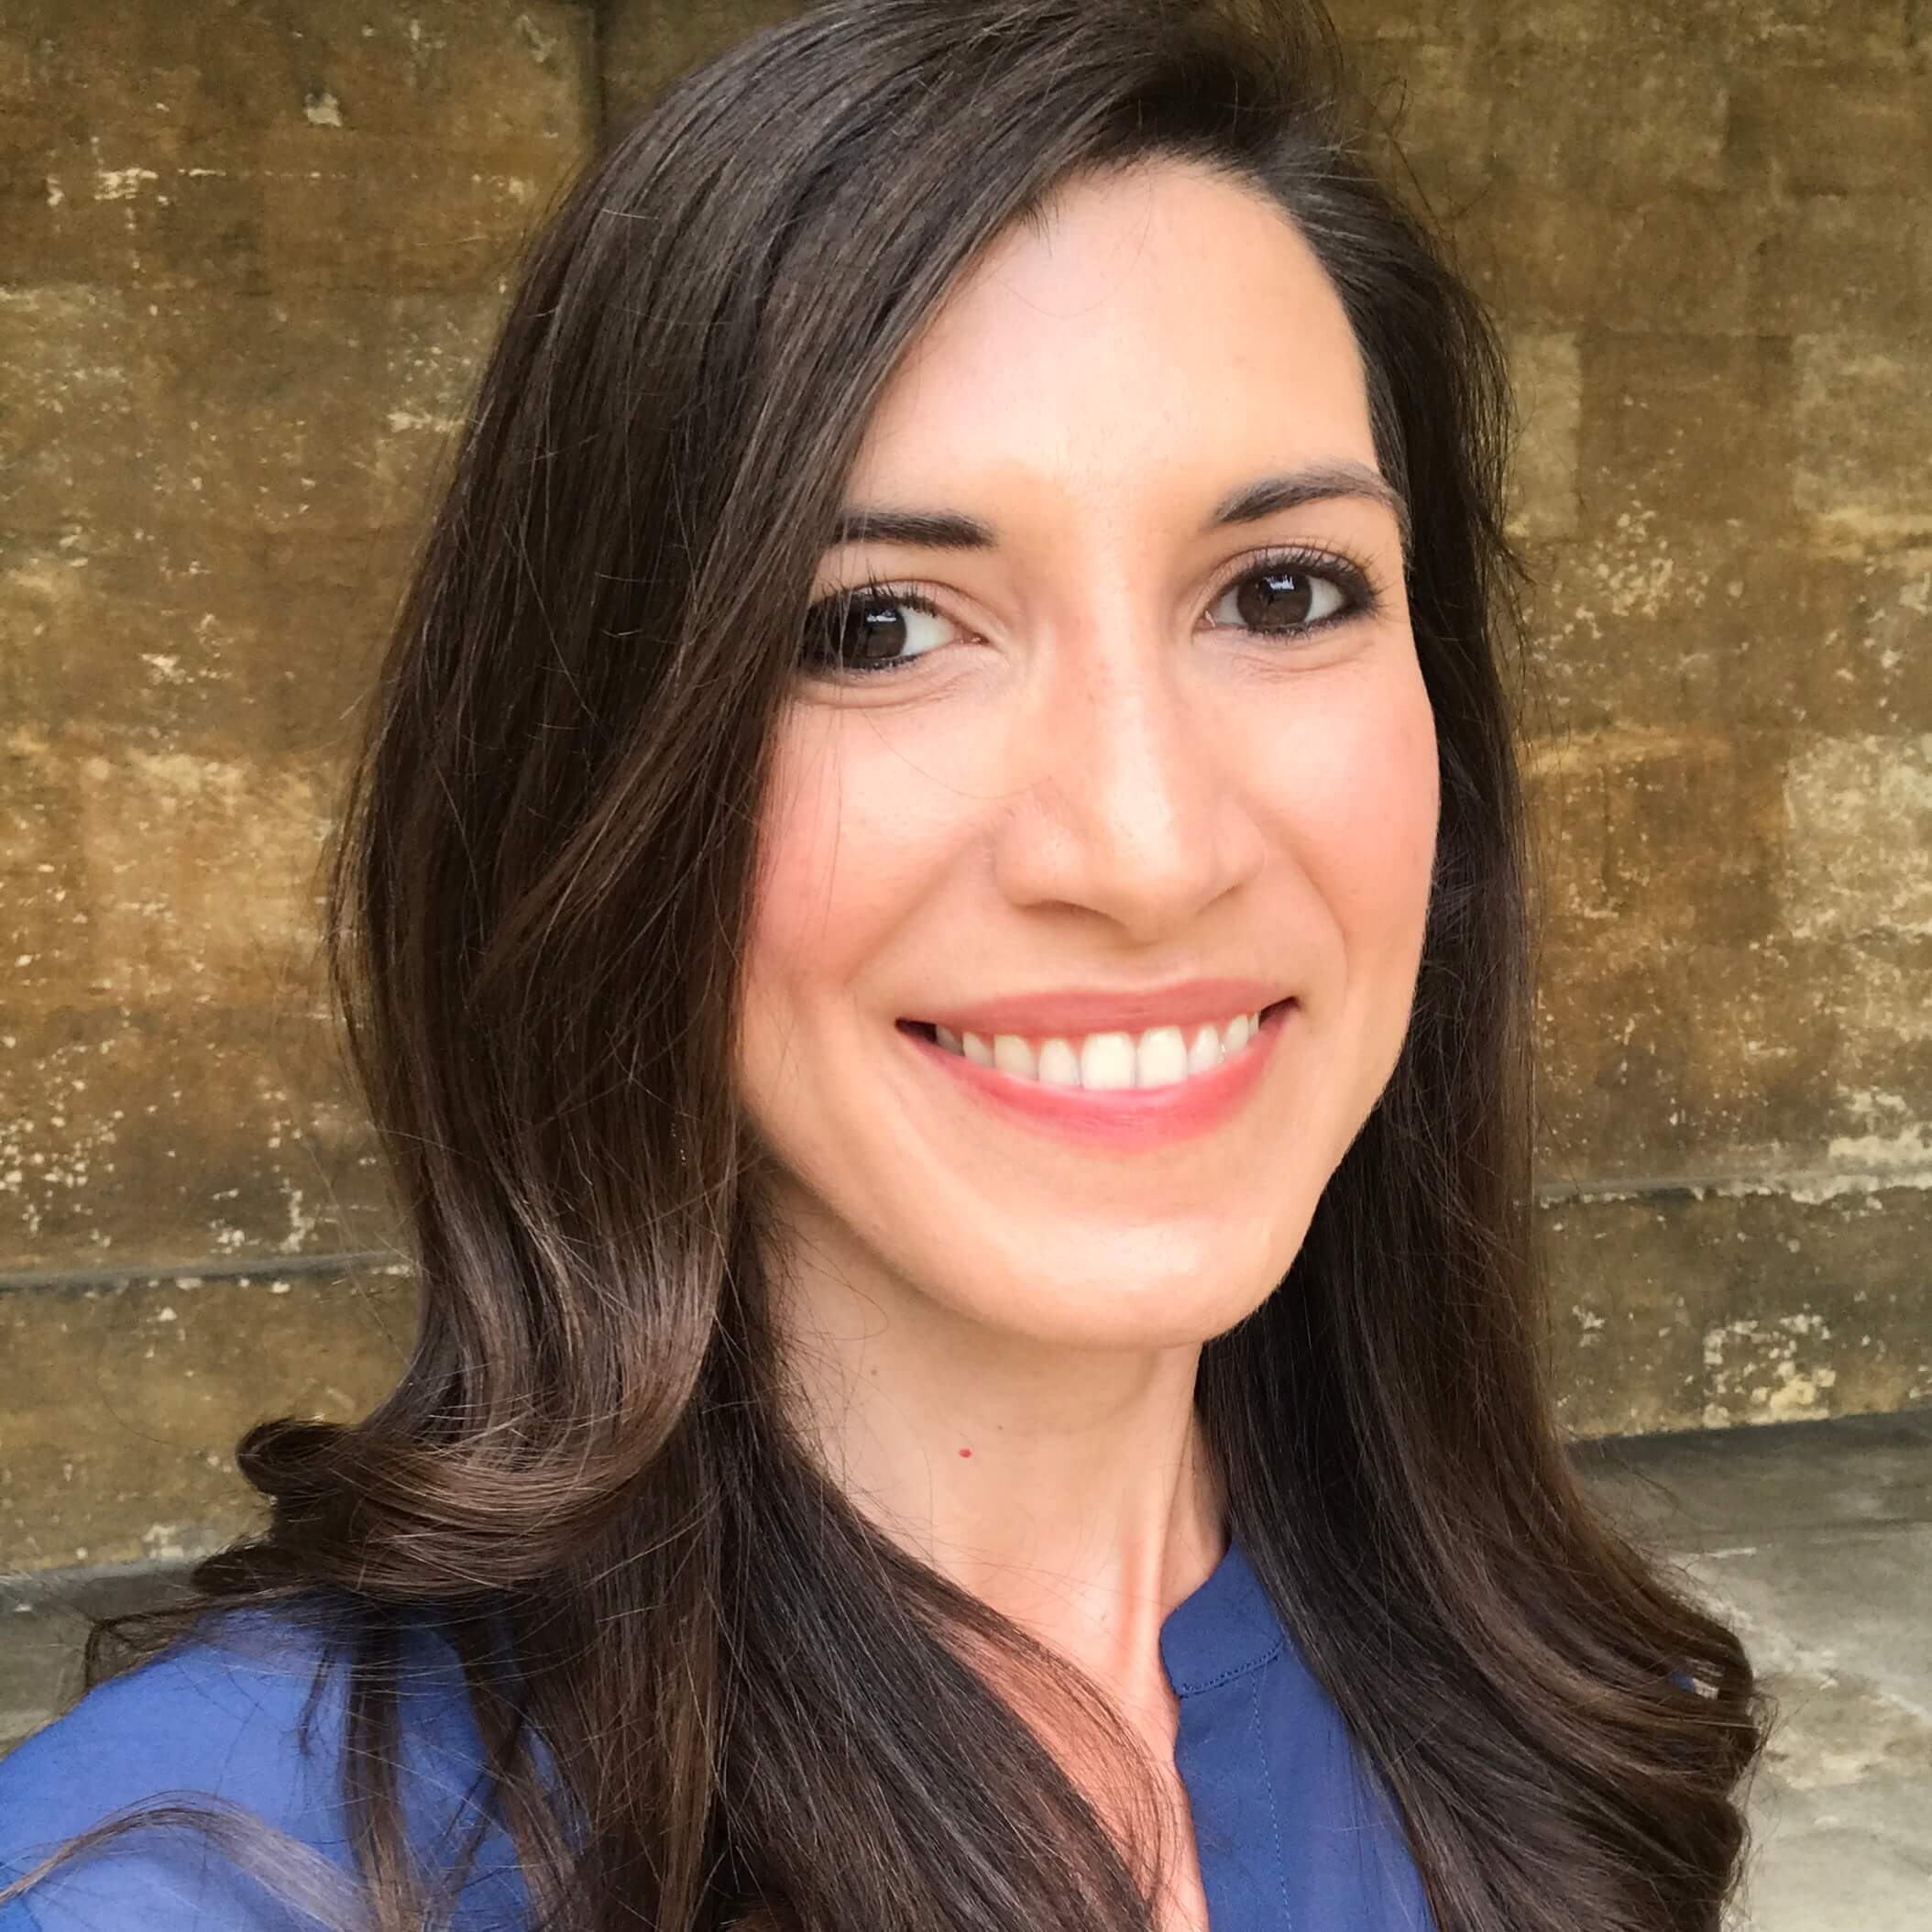 OxHRH Communications Director Awarded Postdoctoral Fellowship in Media Law